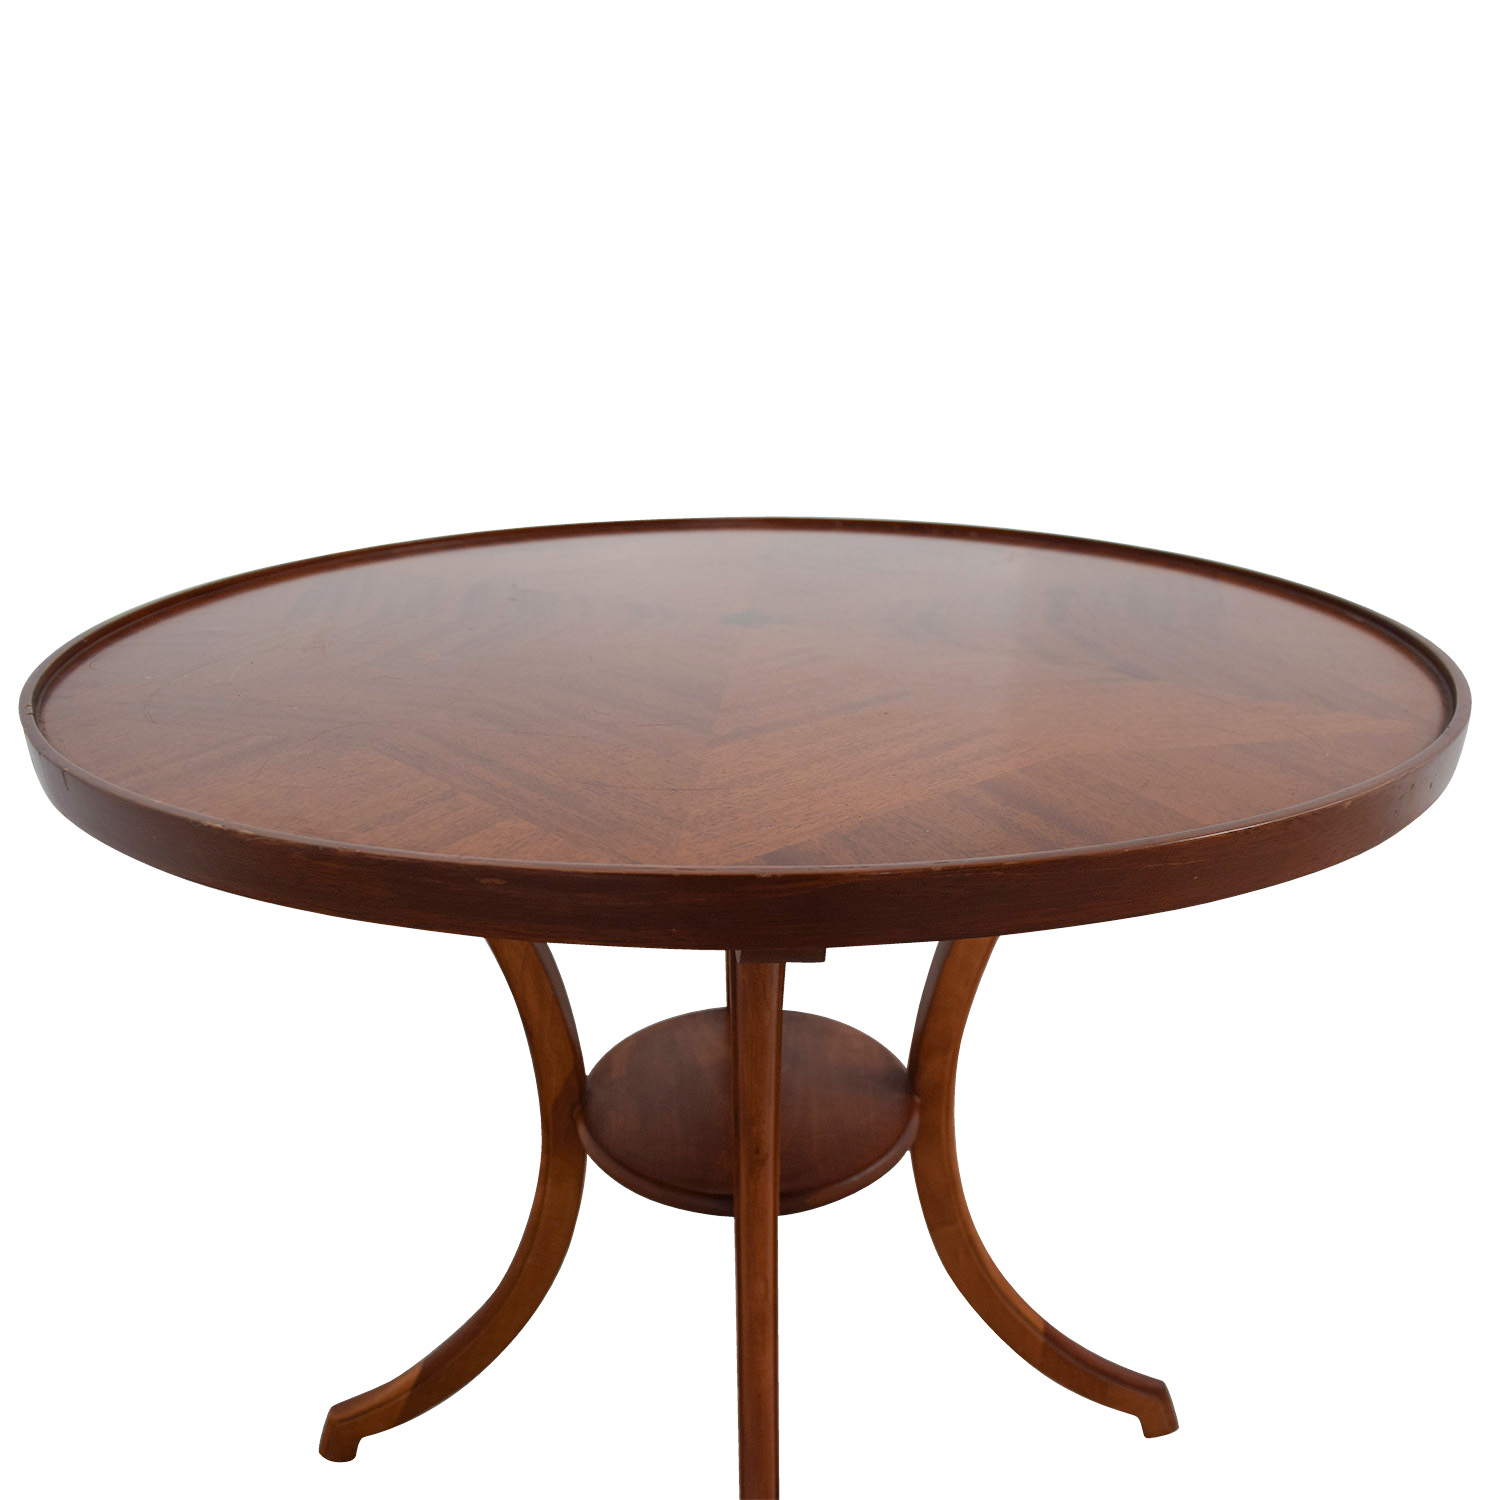 Furniture Masters Furniture Masters Round Wood Accent Table price